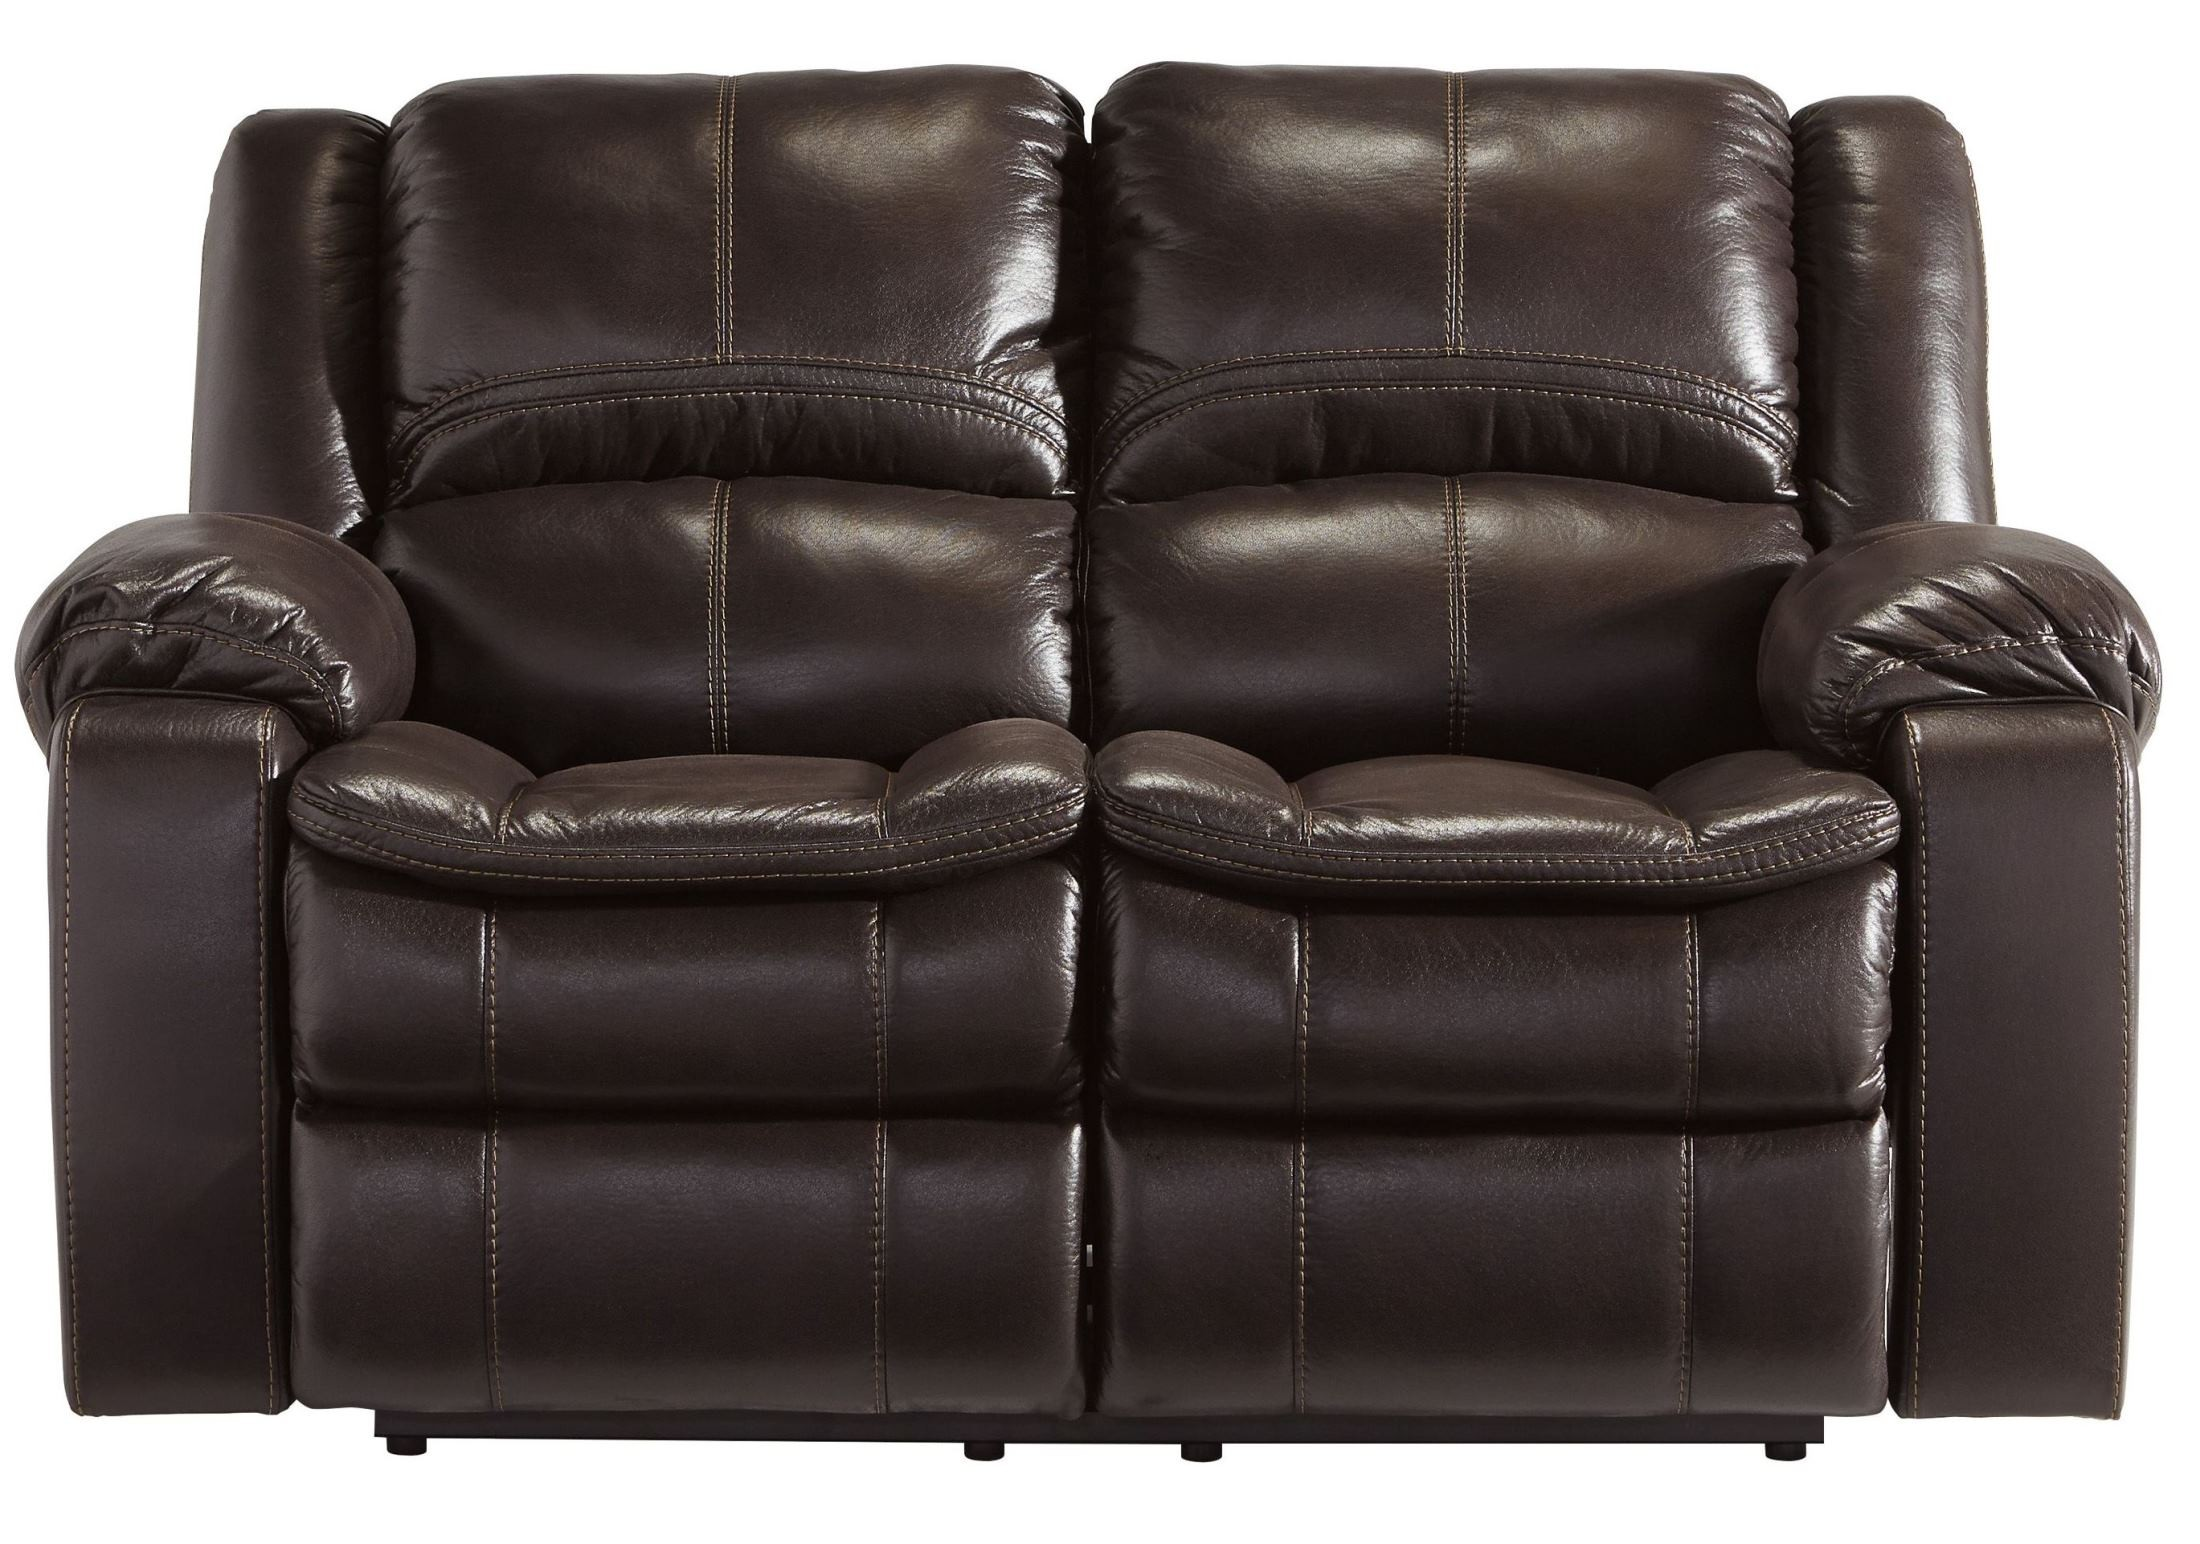 Long Knight Brown Reclining Loveseat From Ashley 8890586 Coleman Furniture